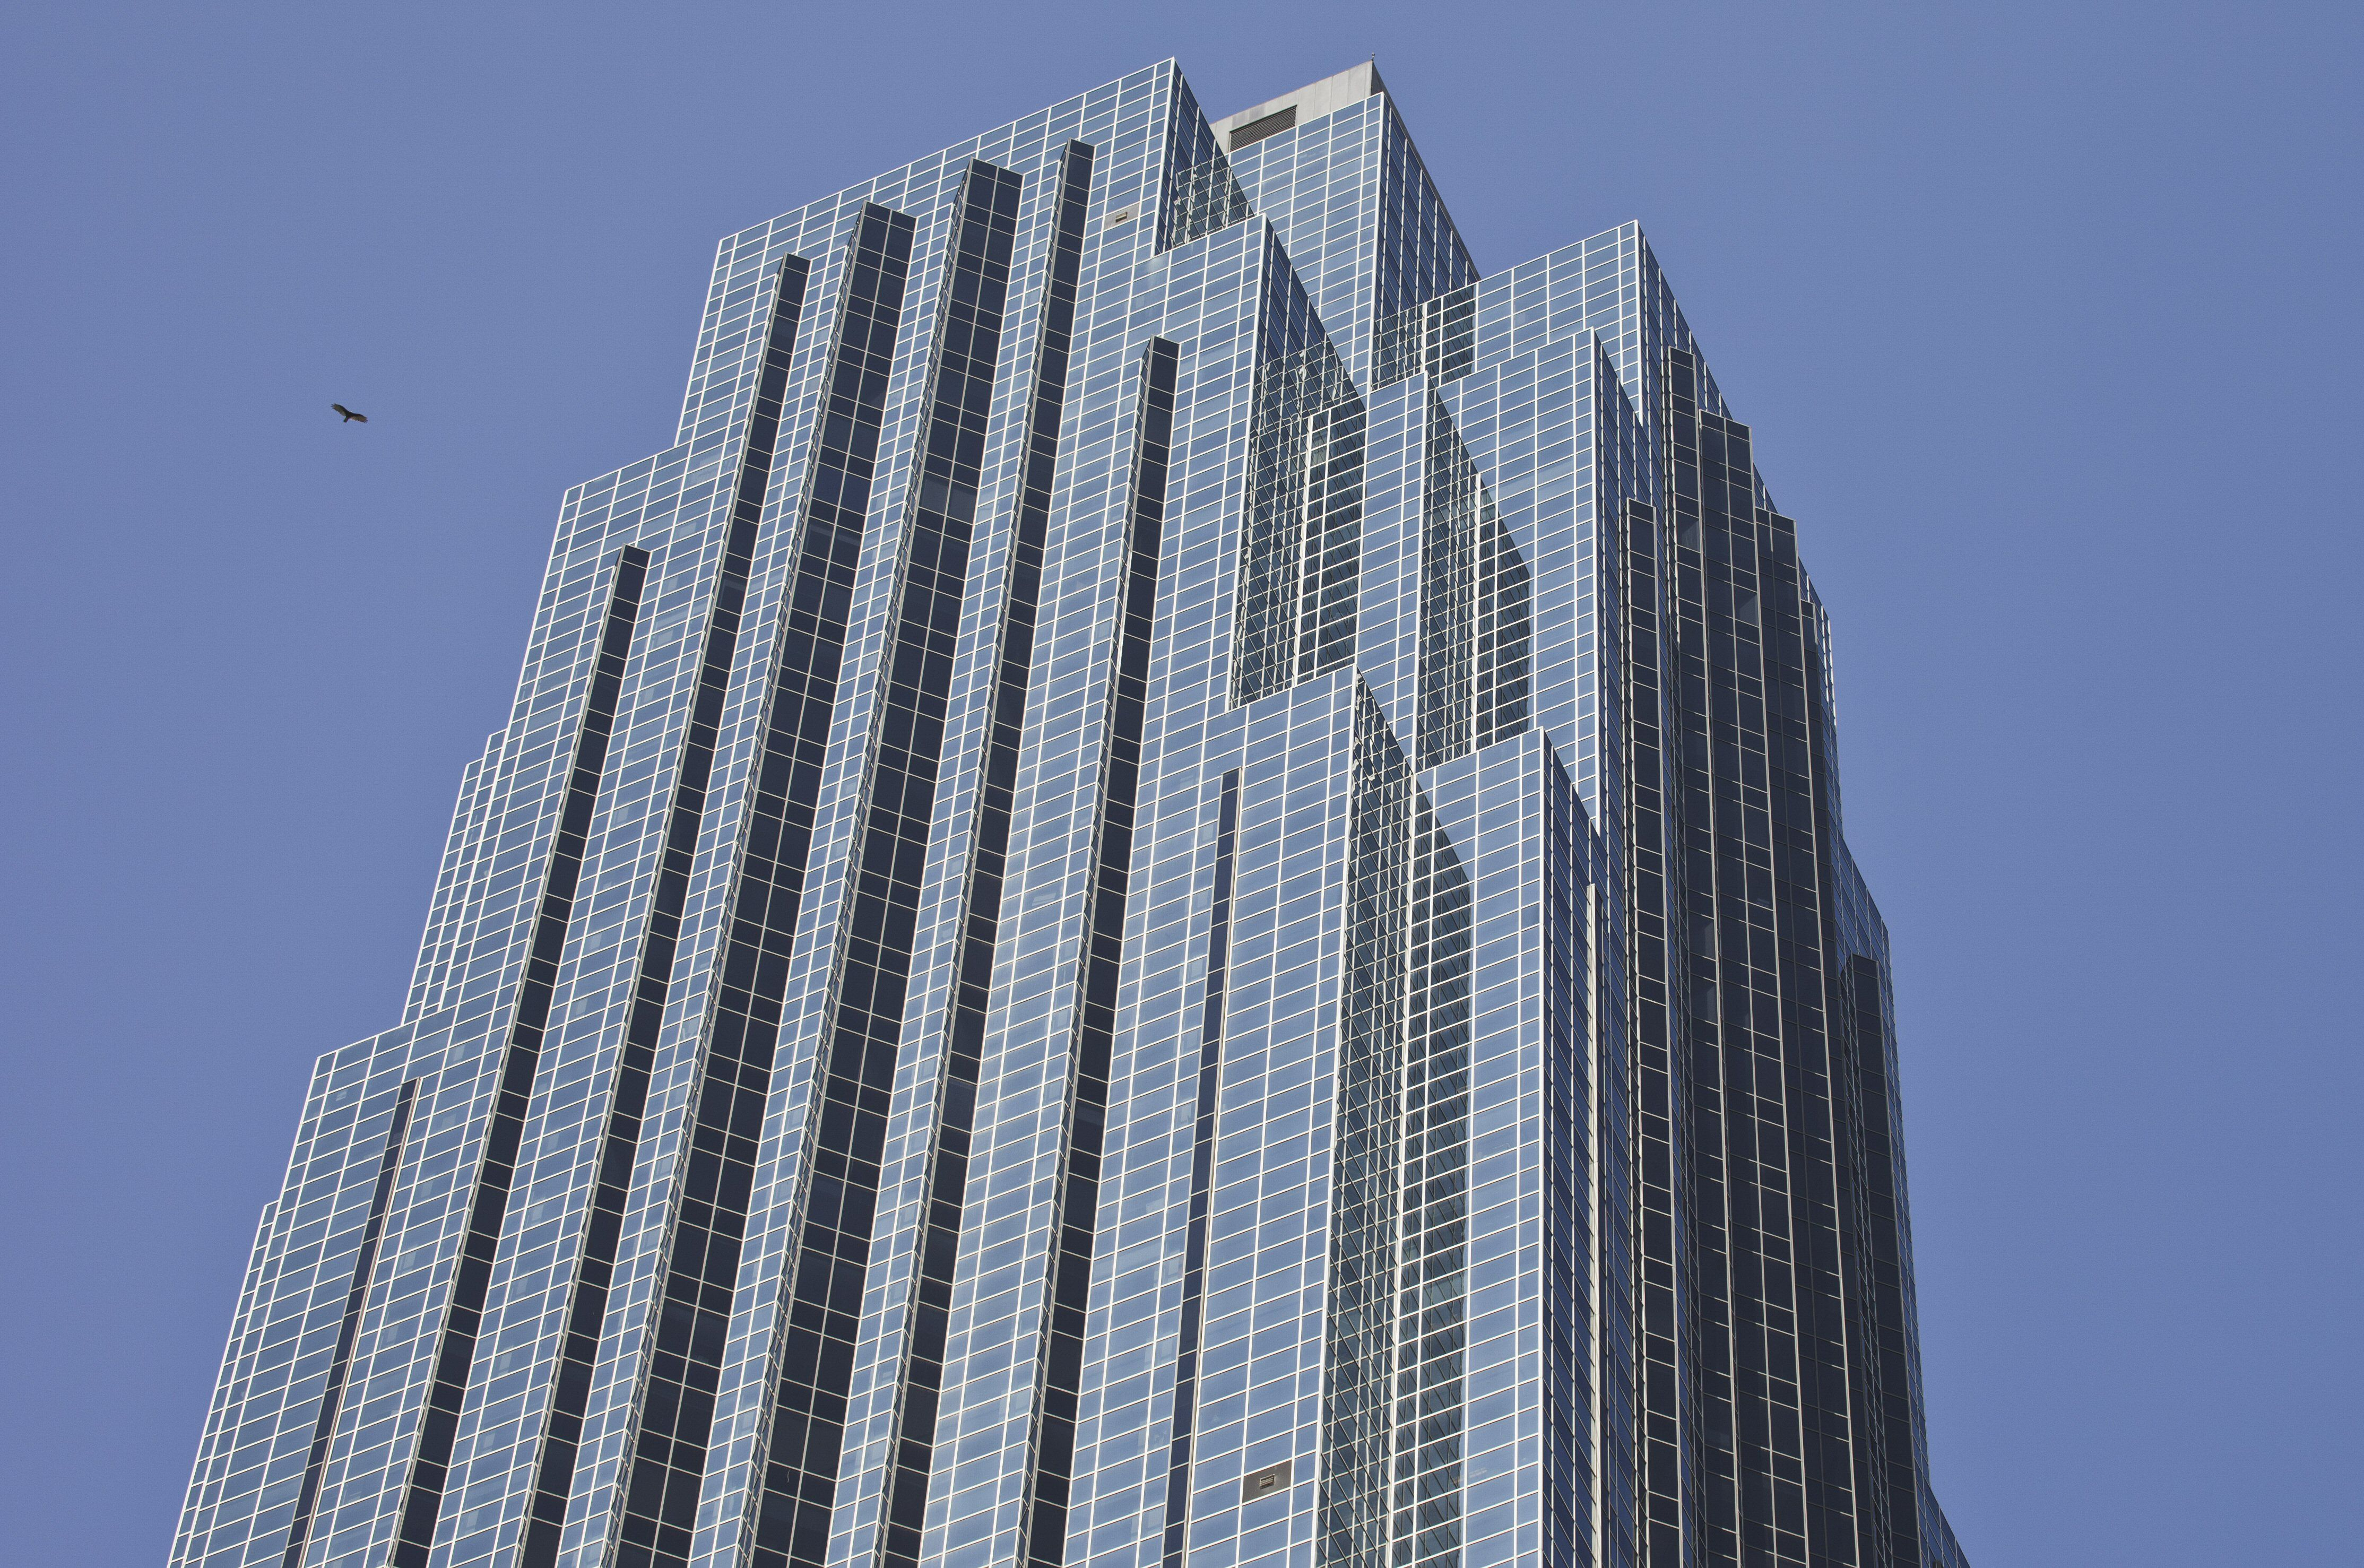 Detail of the glass facade of the Williams Tower in Houston, Texas